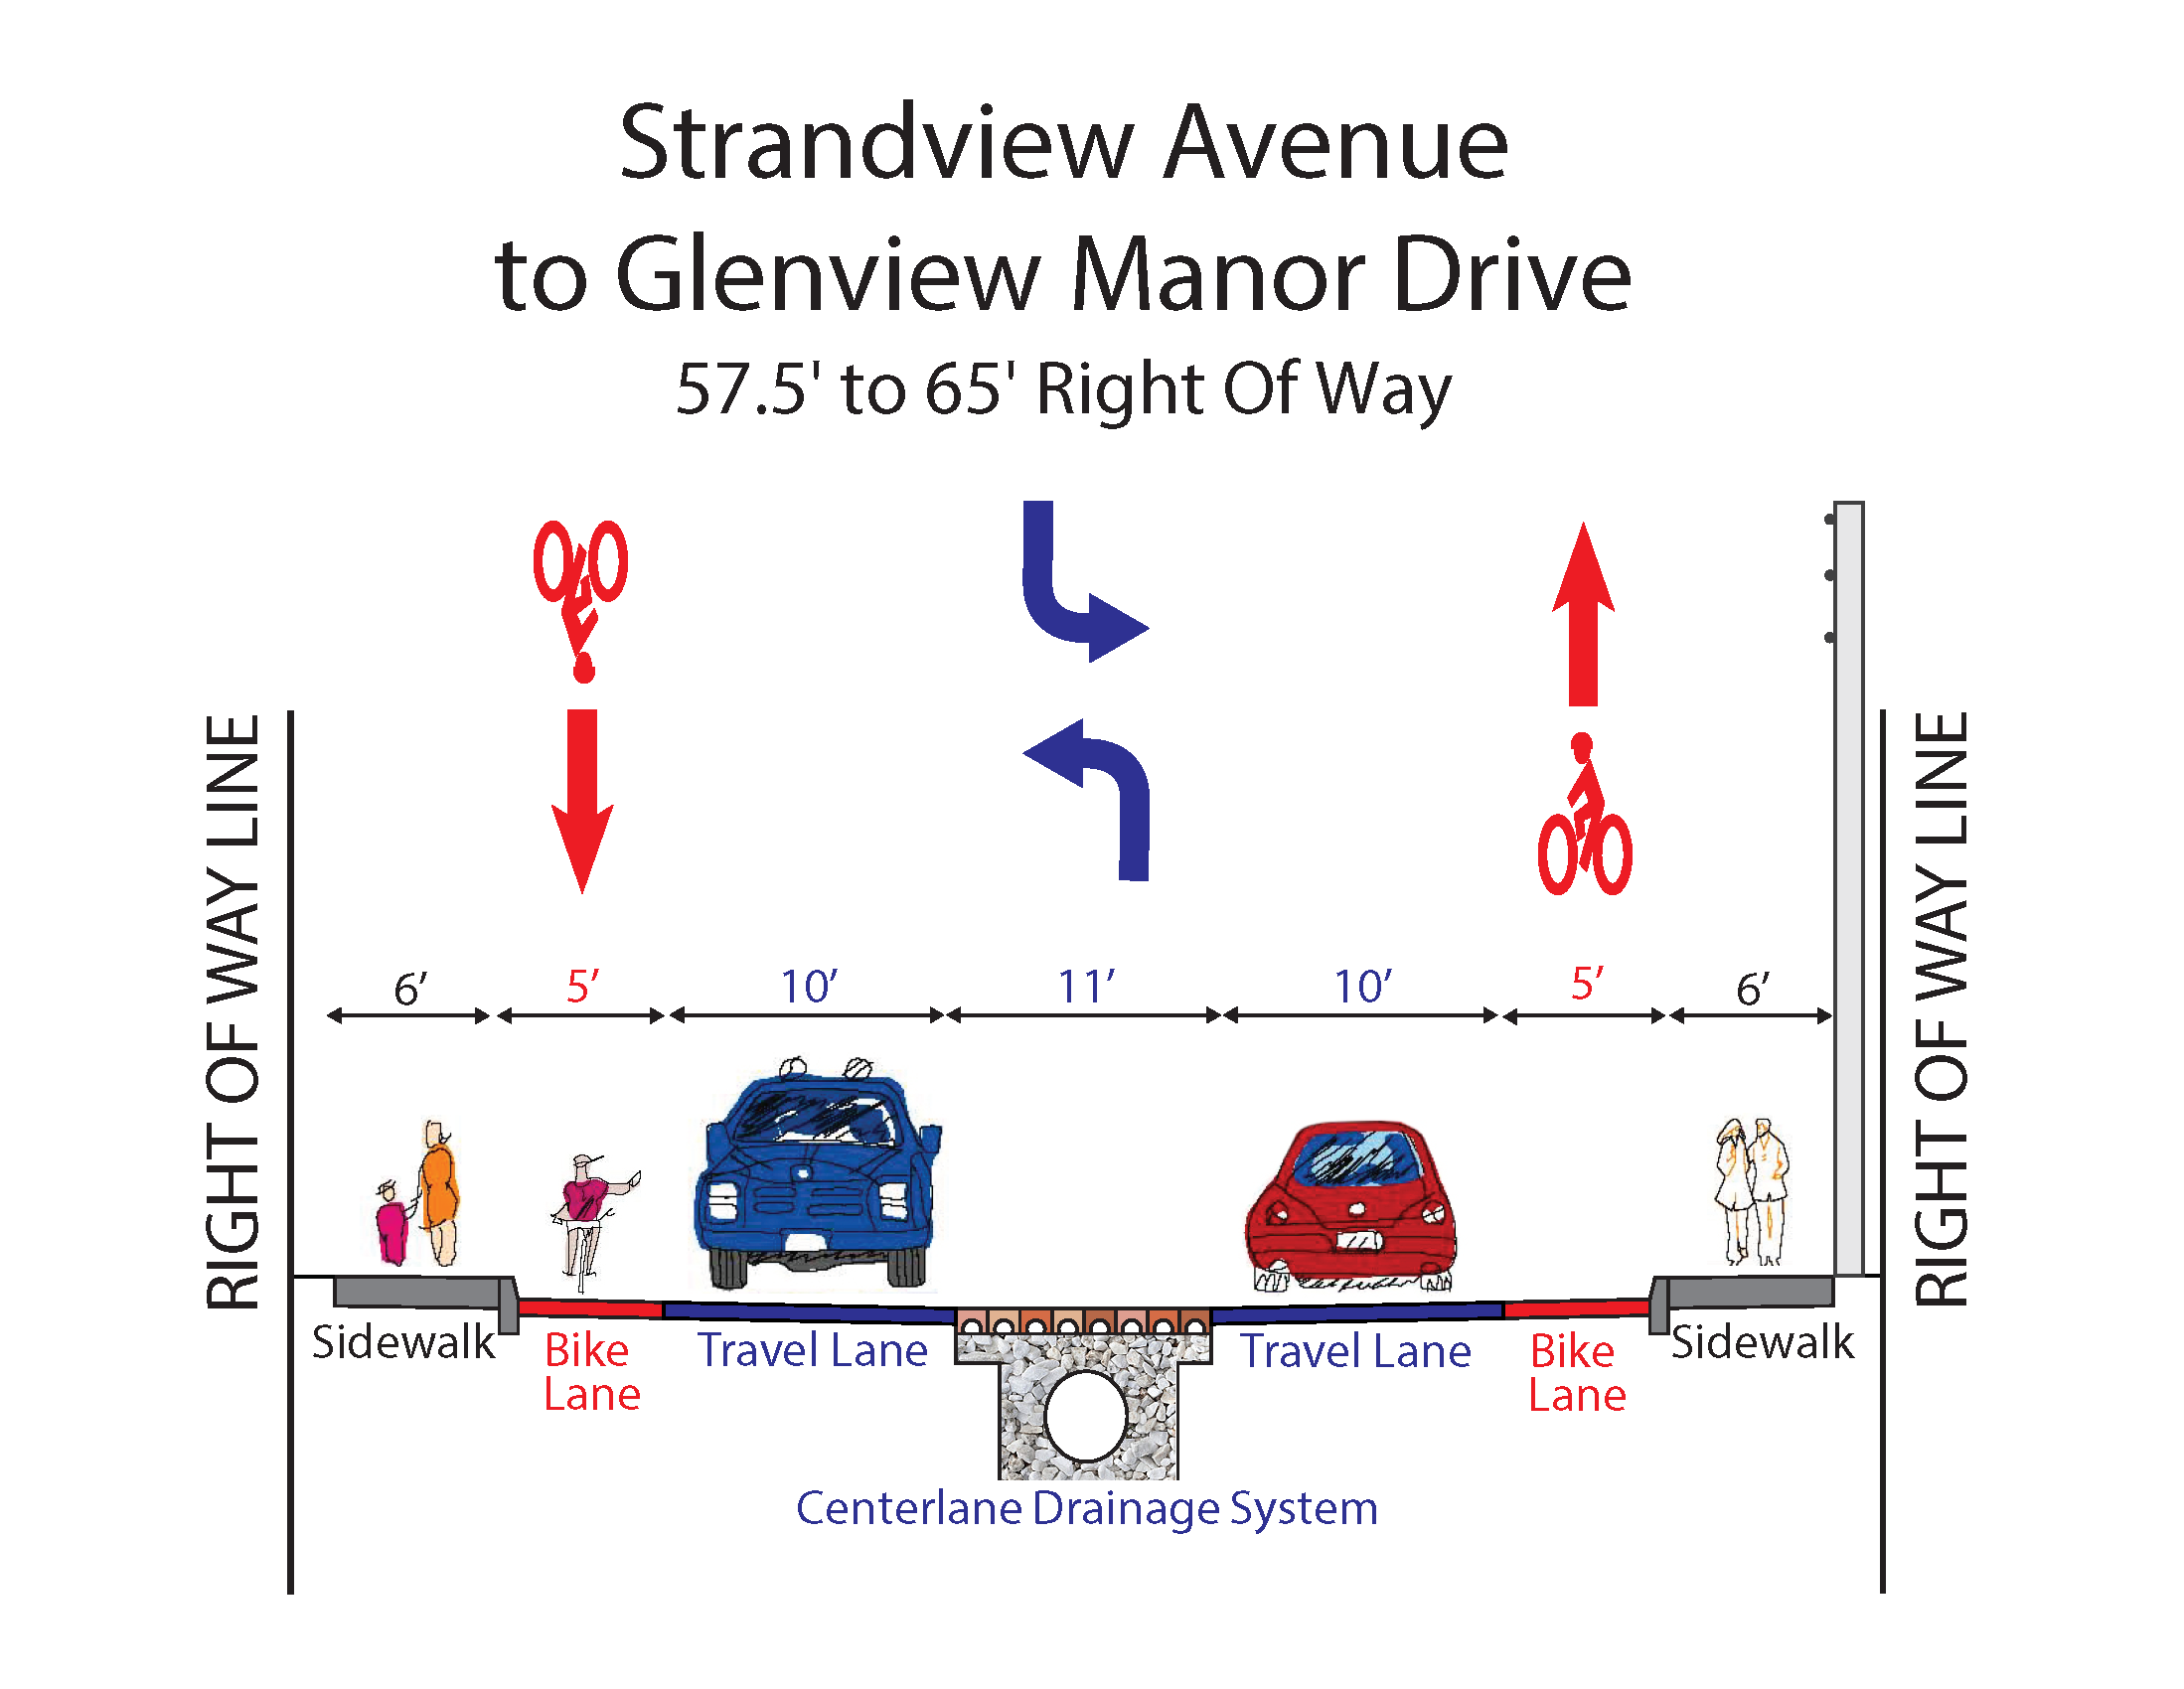 //refreshfmbeach.com/wp-content/uploads/2019/08/Typical-Section-Seg-3-Strandview-Ave-to-Glenview-Manor-Drive.png